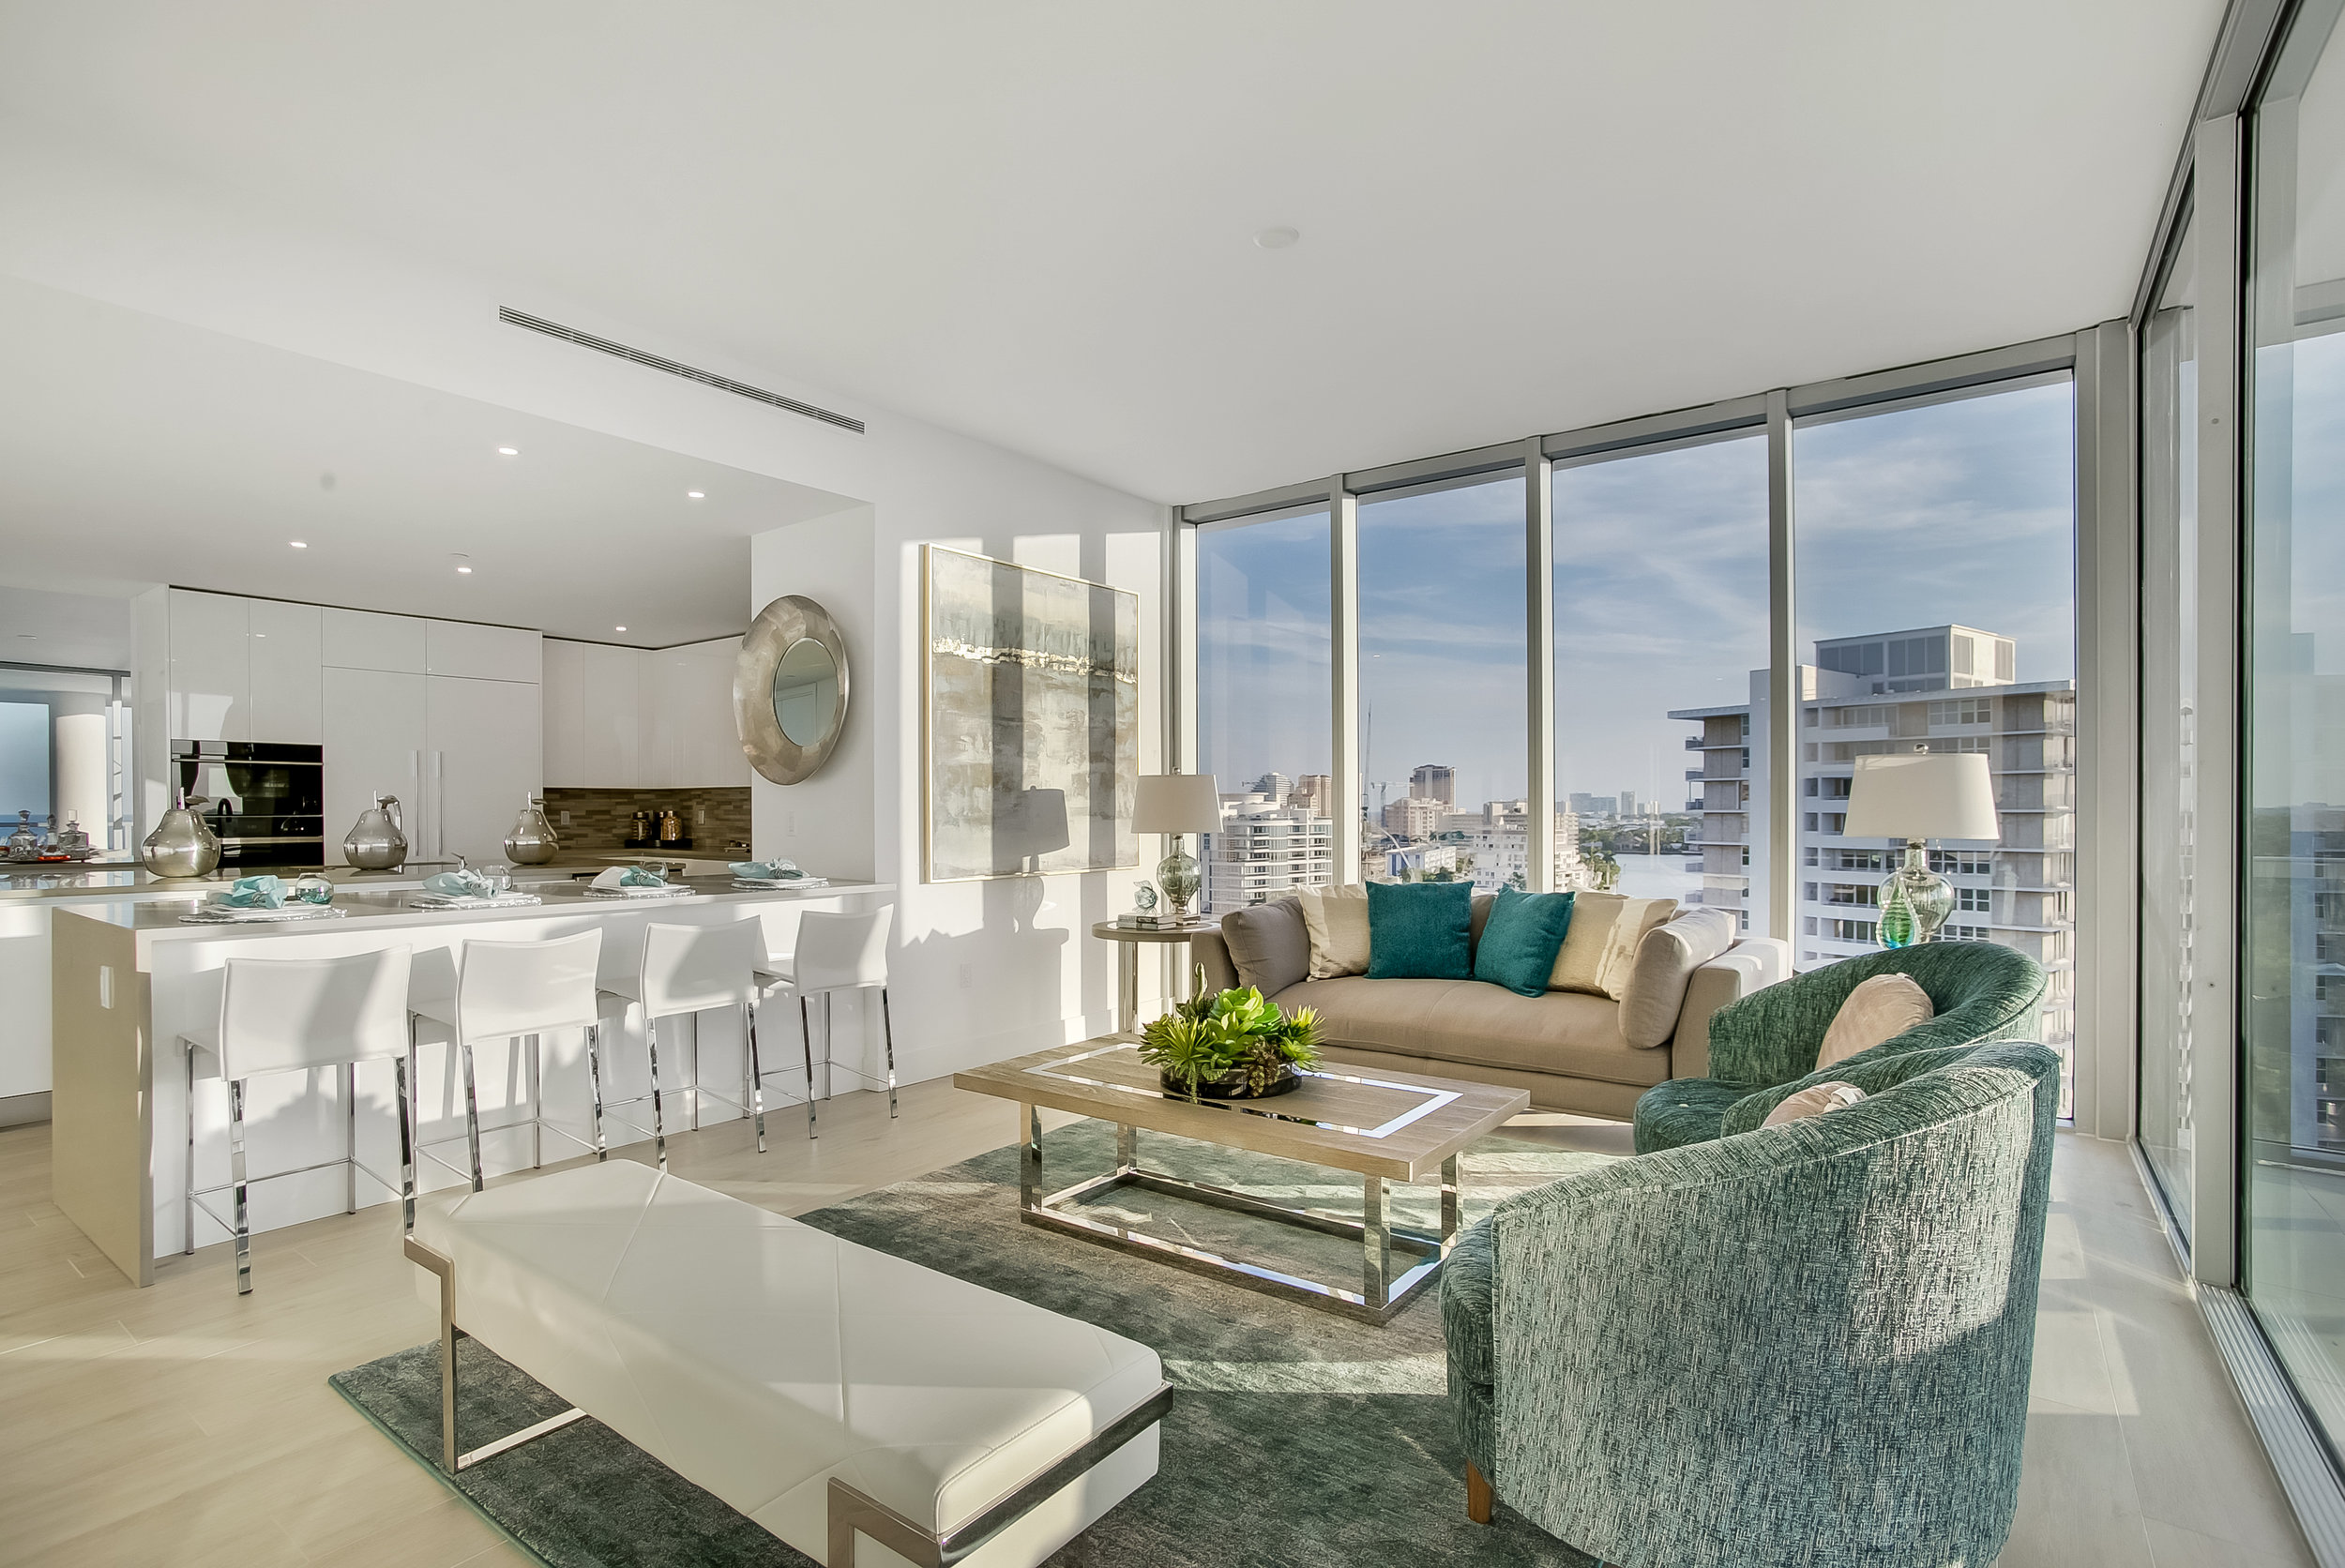 Ocean Land Investment's AquaBlu Designed by Borges + Associates Architects Receives PCO In Fort Lauderdale